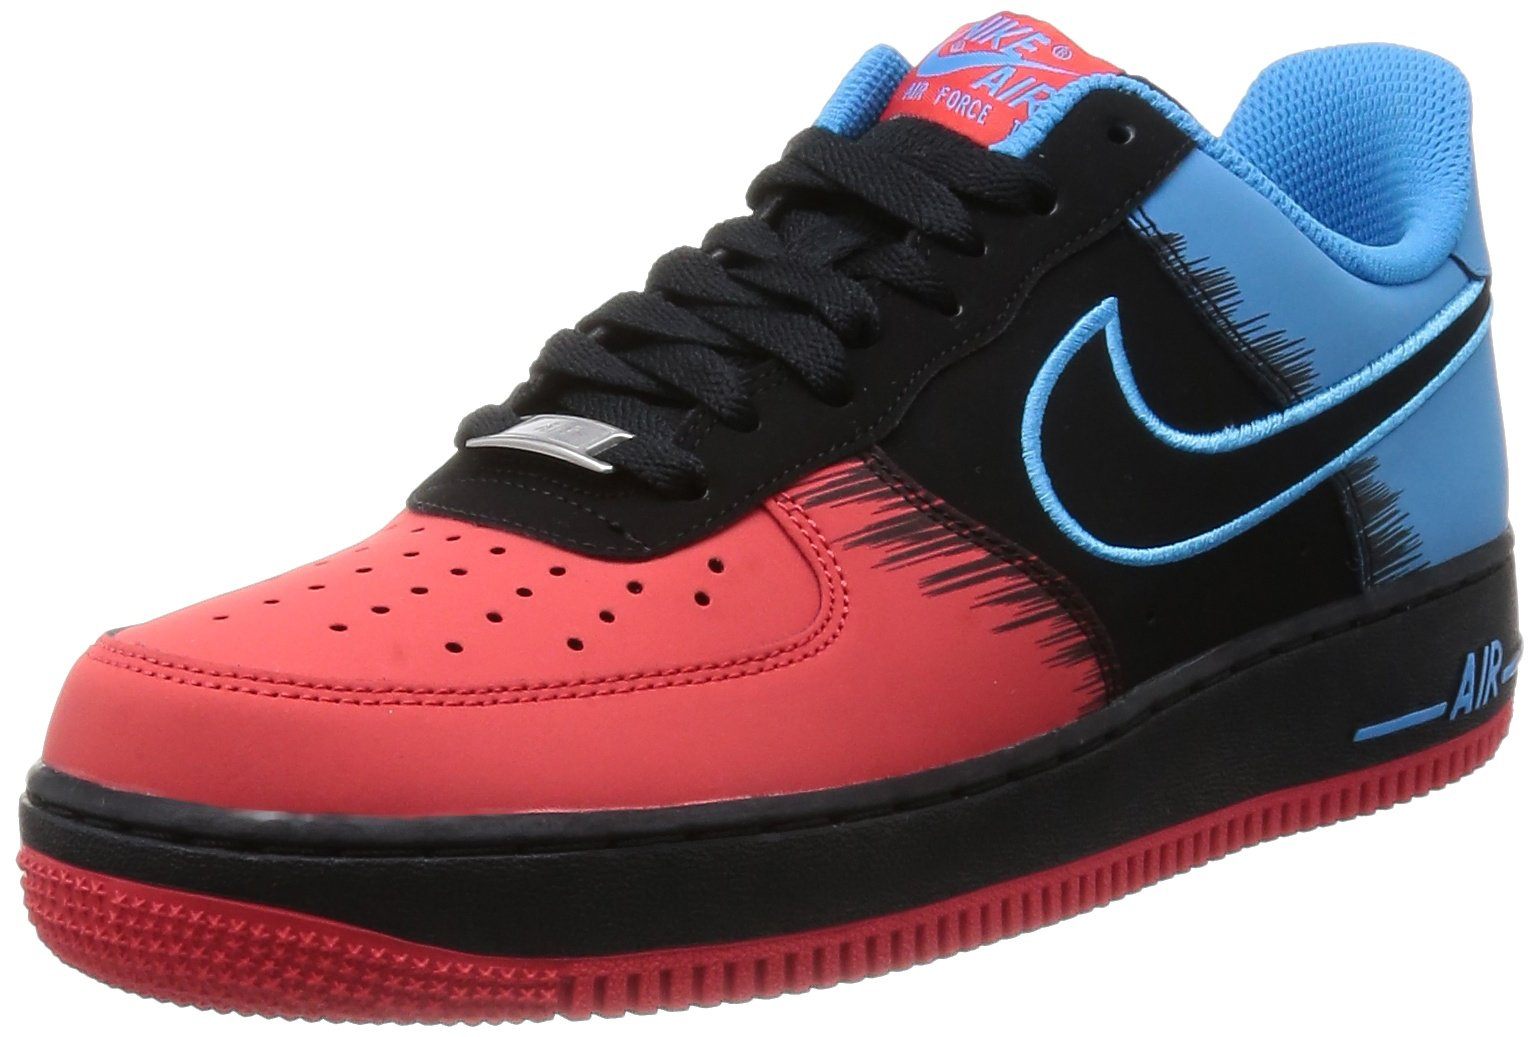 Nike Air Force 1 'Spiderman' Men Sneakers LT Crimson/Vivid Blue/Black 488298-615